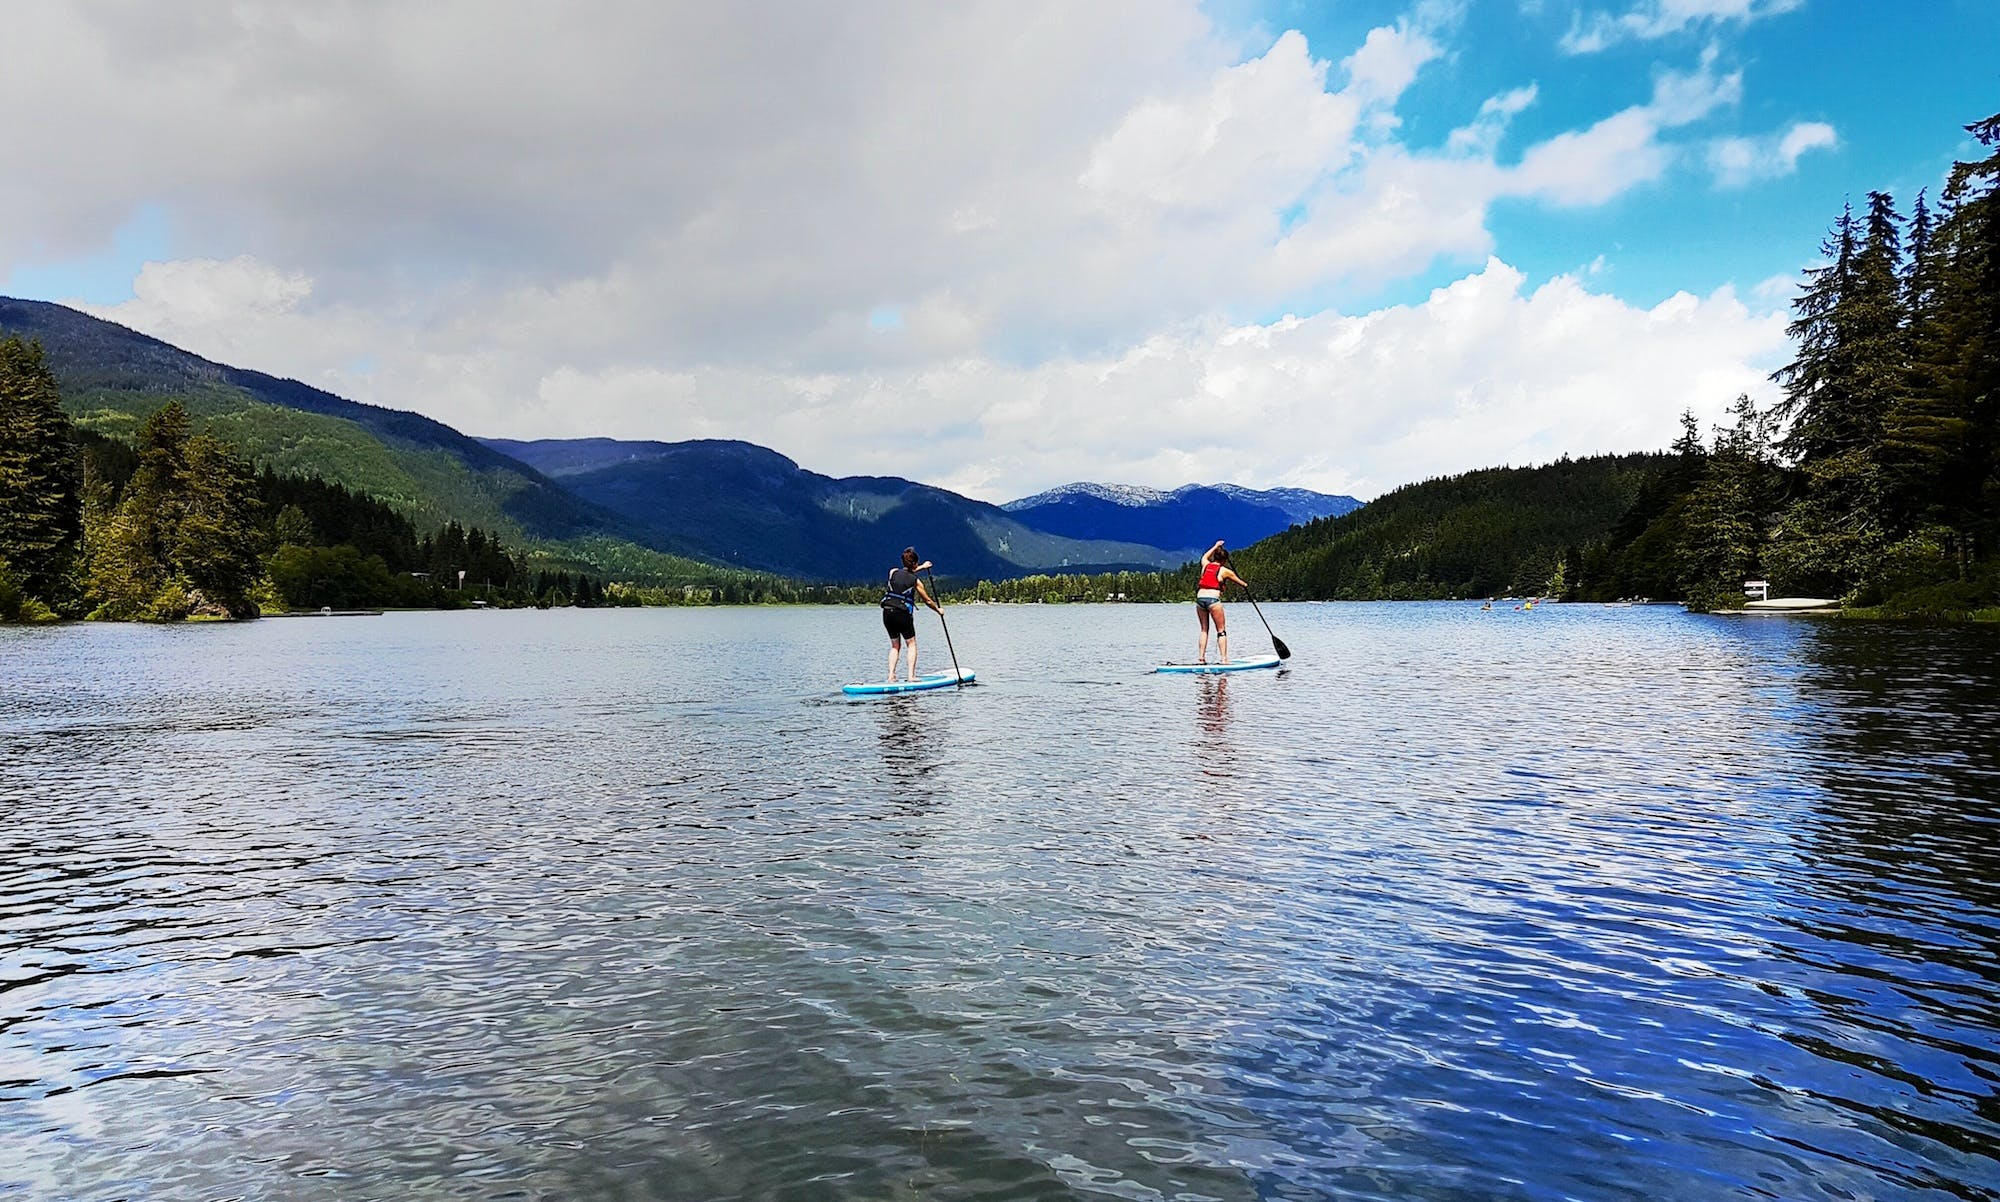 Stand Up Paddleboard Rental and Tour in Whistler, Canada